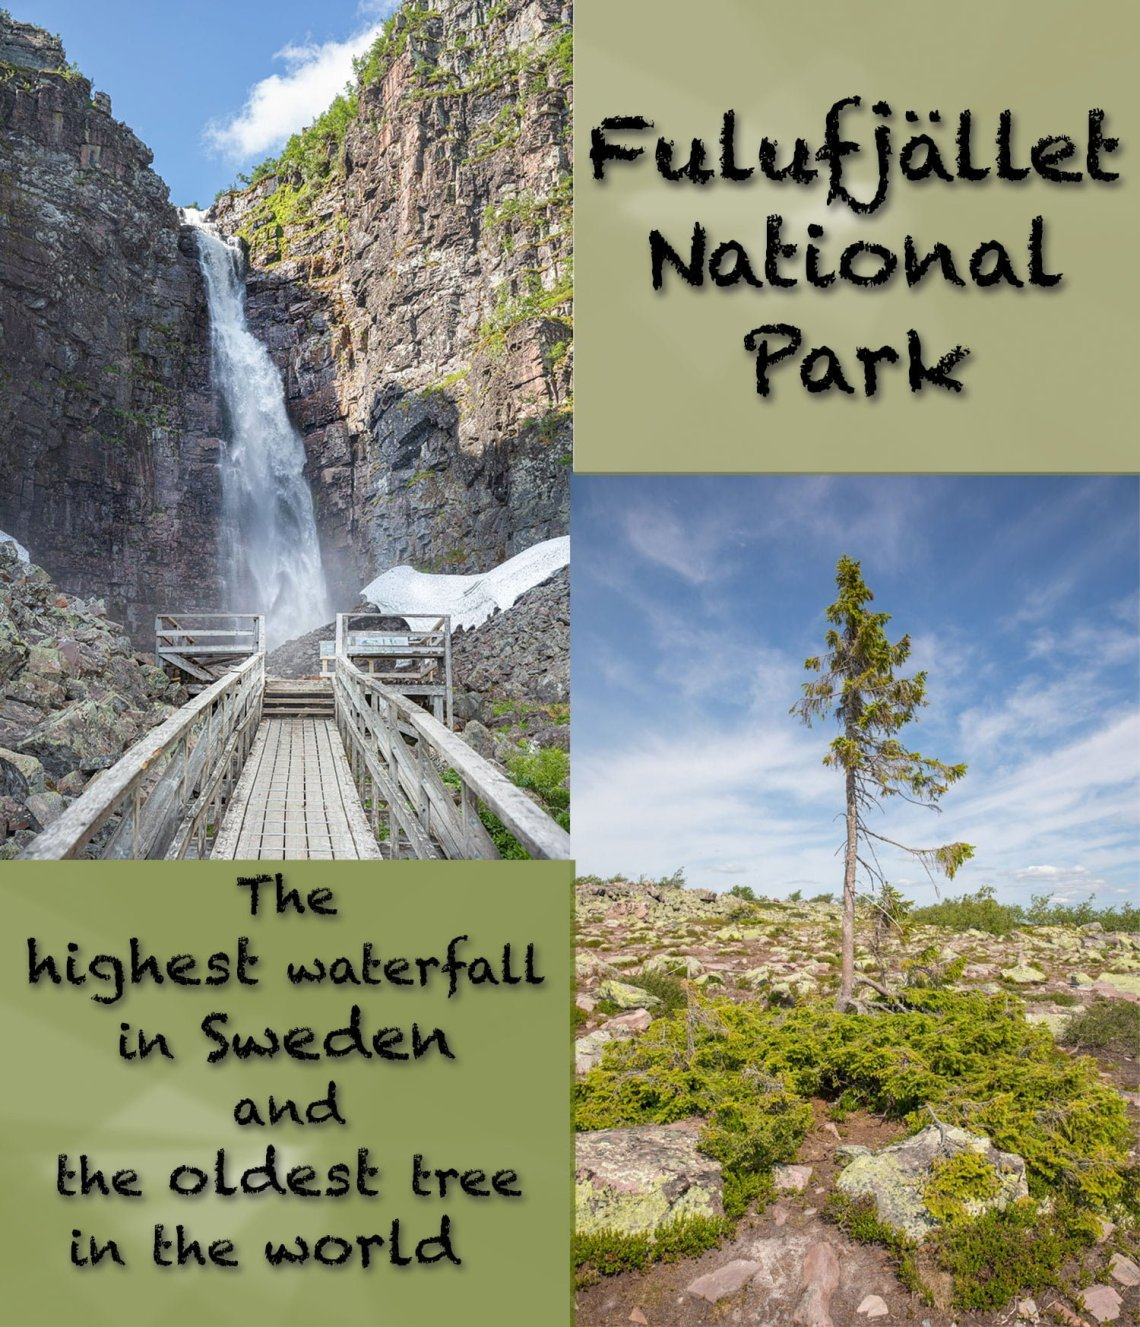 Worlds oldest tree and highest waterfall in Sweden